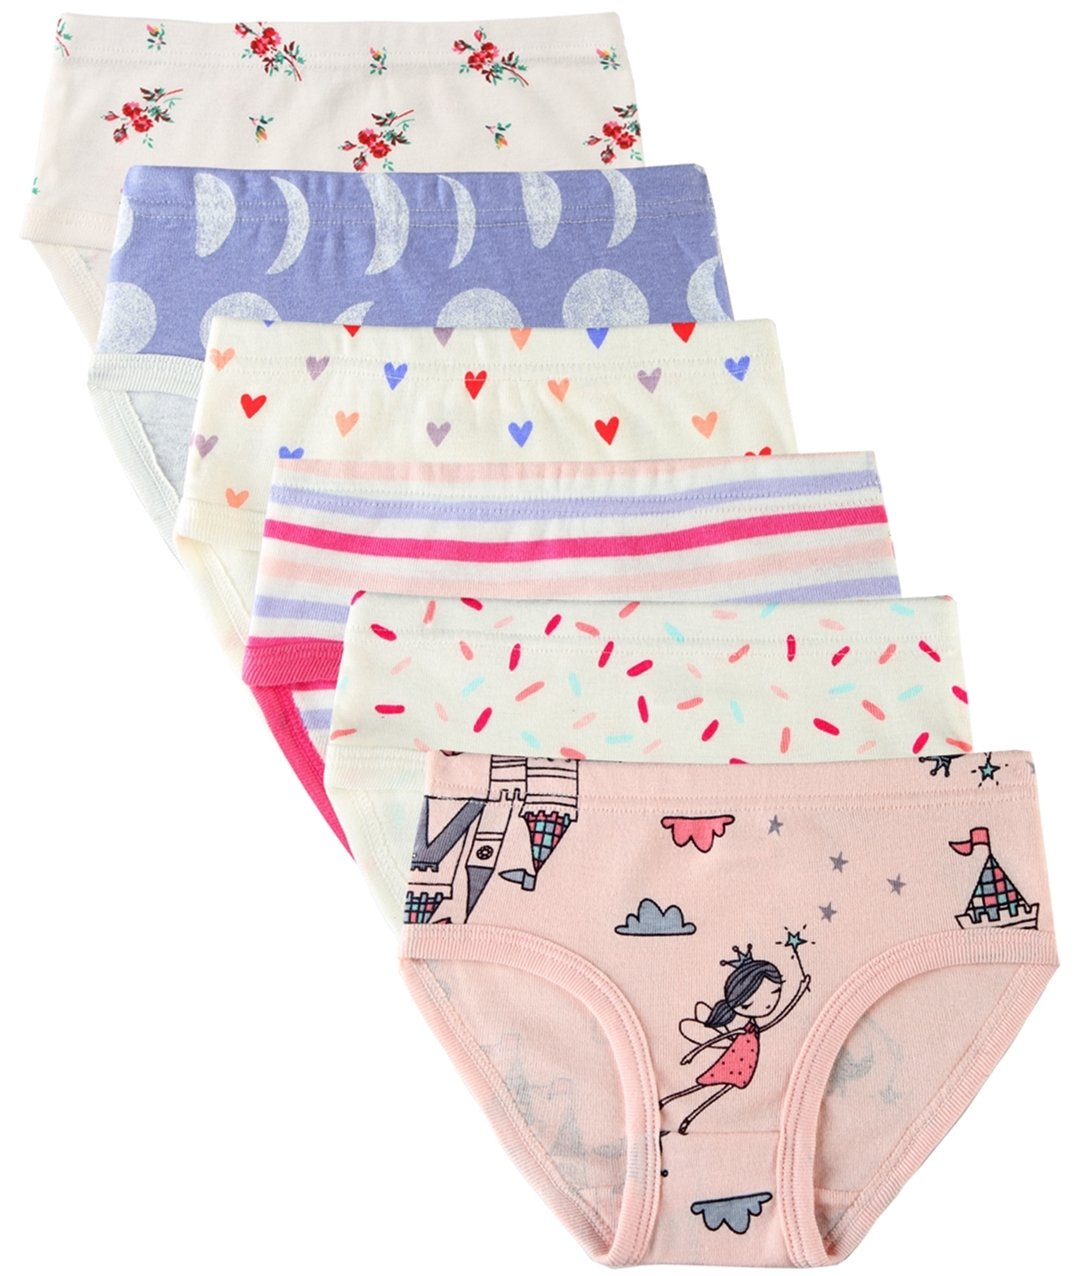 6 Pack Little Girl Underwear Cotton Fit Age 1-7, Baby Girls Panties Toddler Girl's Undies (Princess, 3-4 Years/Waist 16.5'',Height 38''-41'')